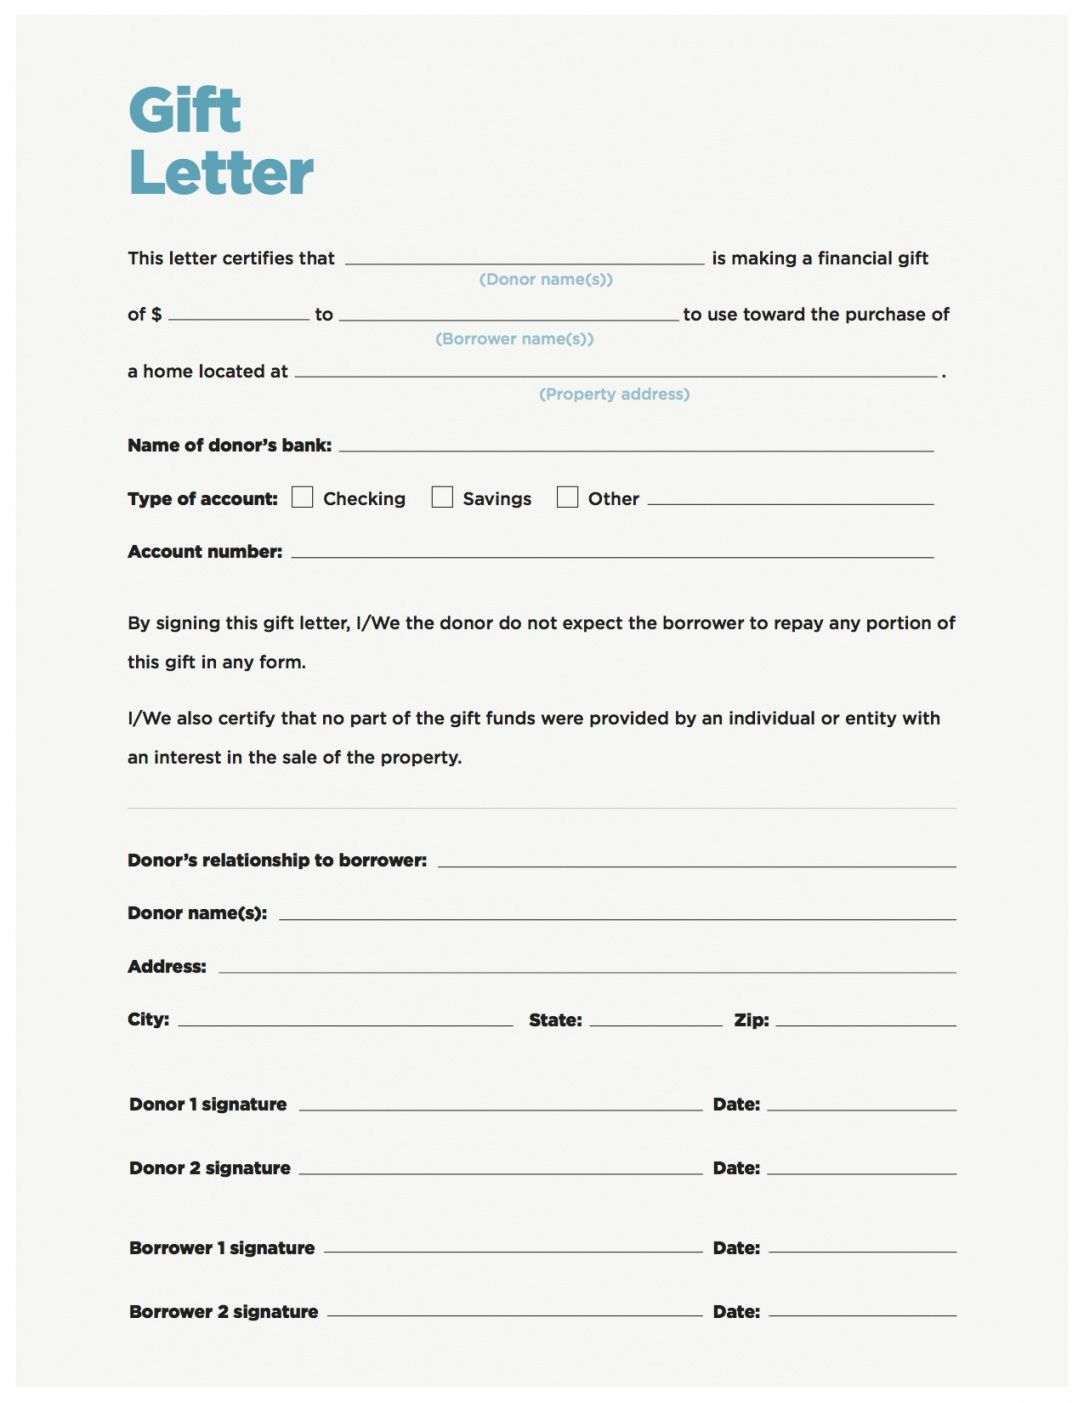 Car Gift Letter Template In 2020 With Images Letter Gifts